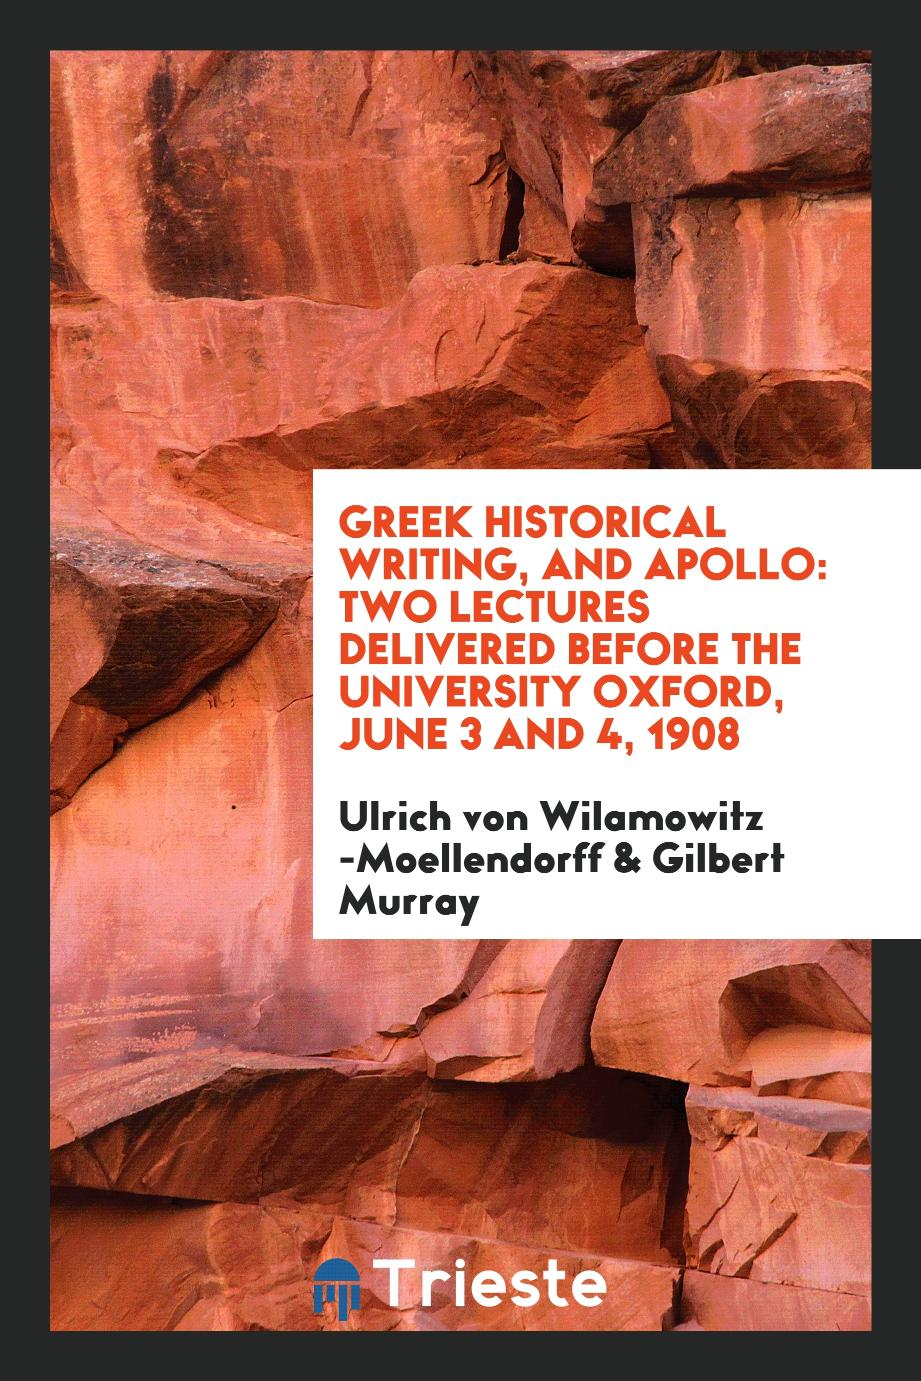 Greek Historical Writing, and Apollo: Two Lectures Delivered Before the University Oxford, June 3 and 4, 1908